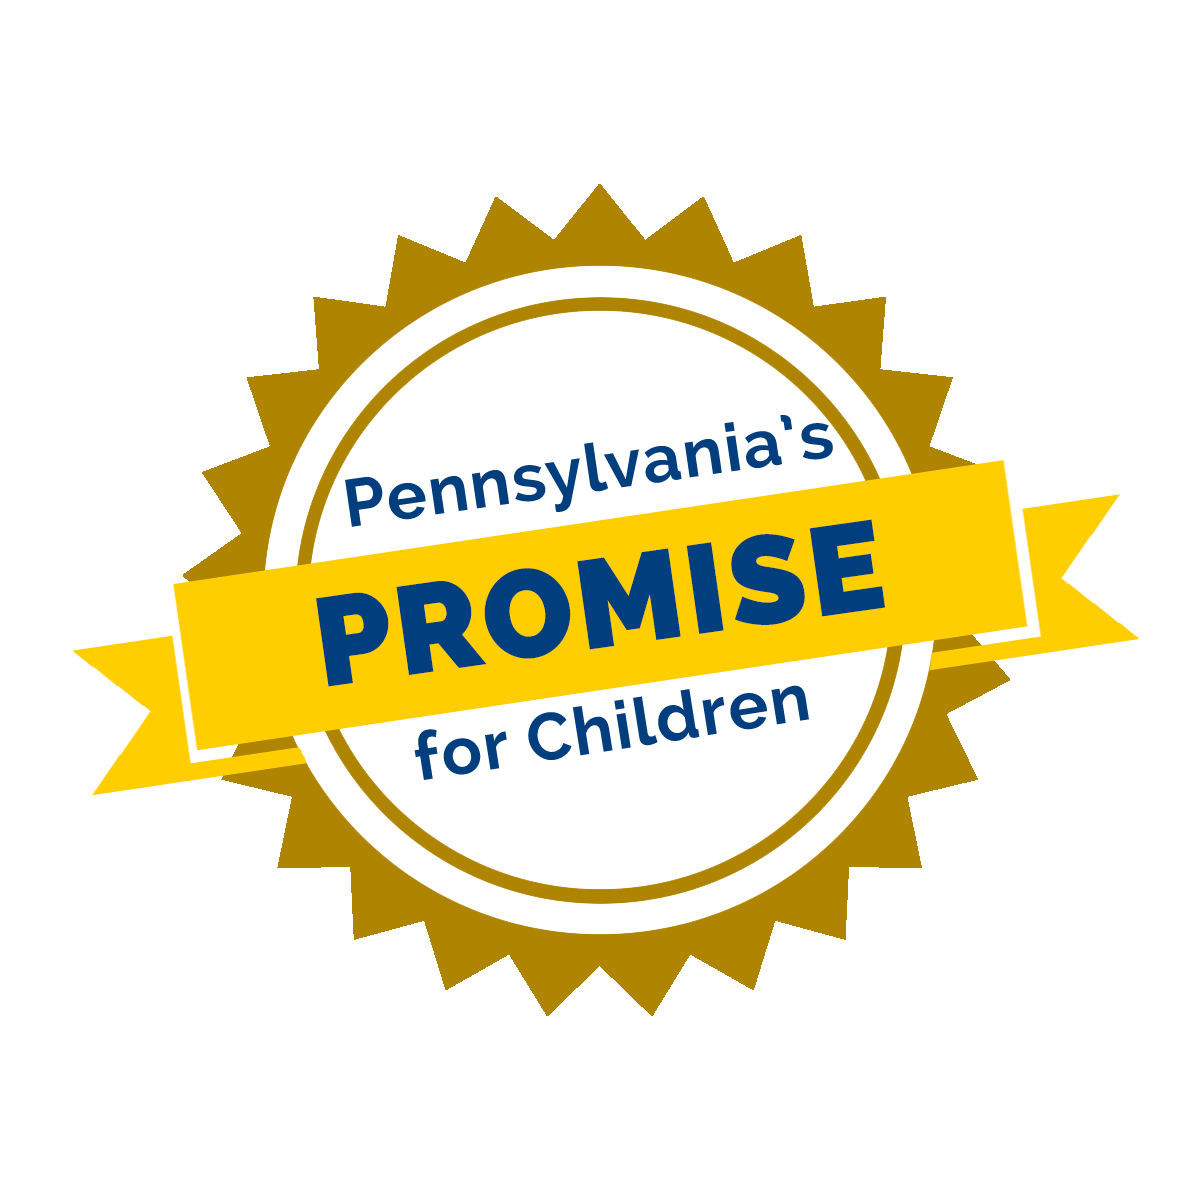 PA Promise for Children